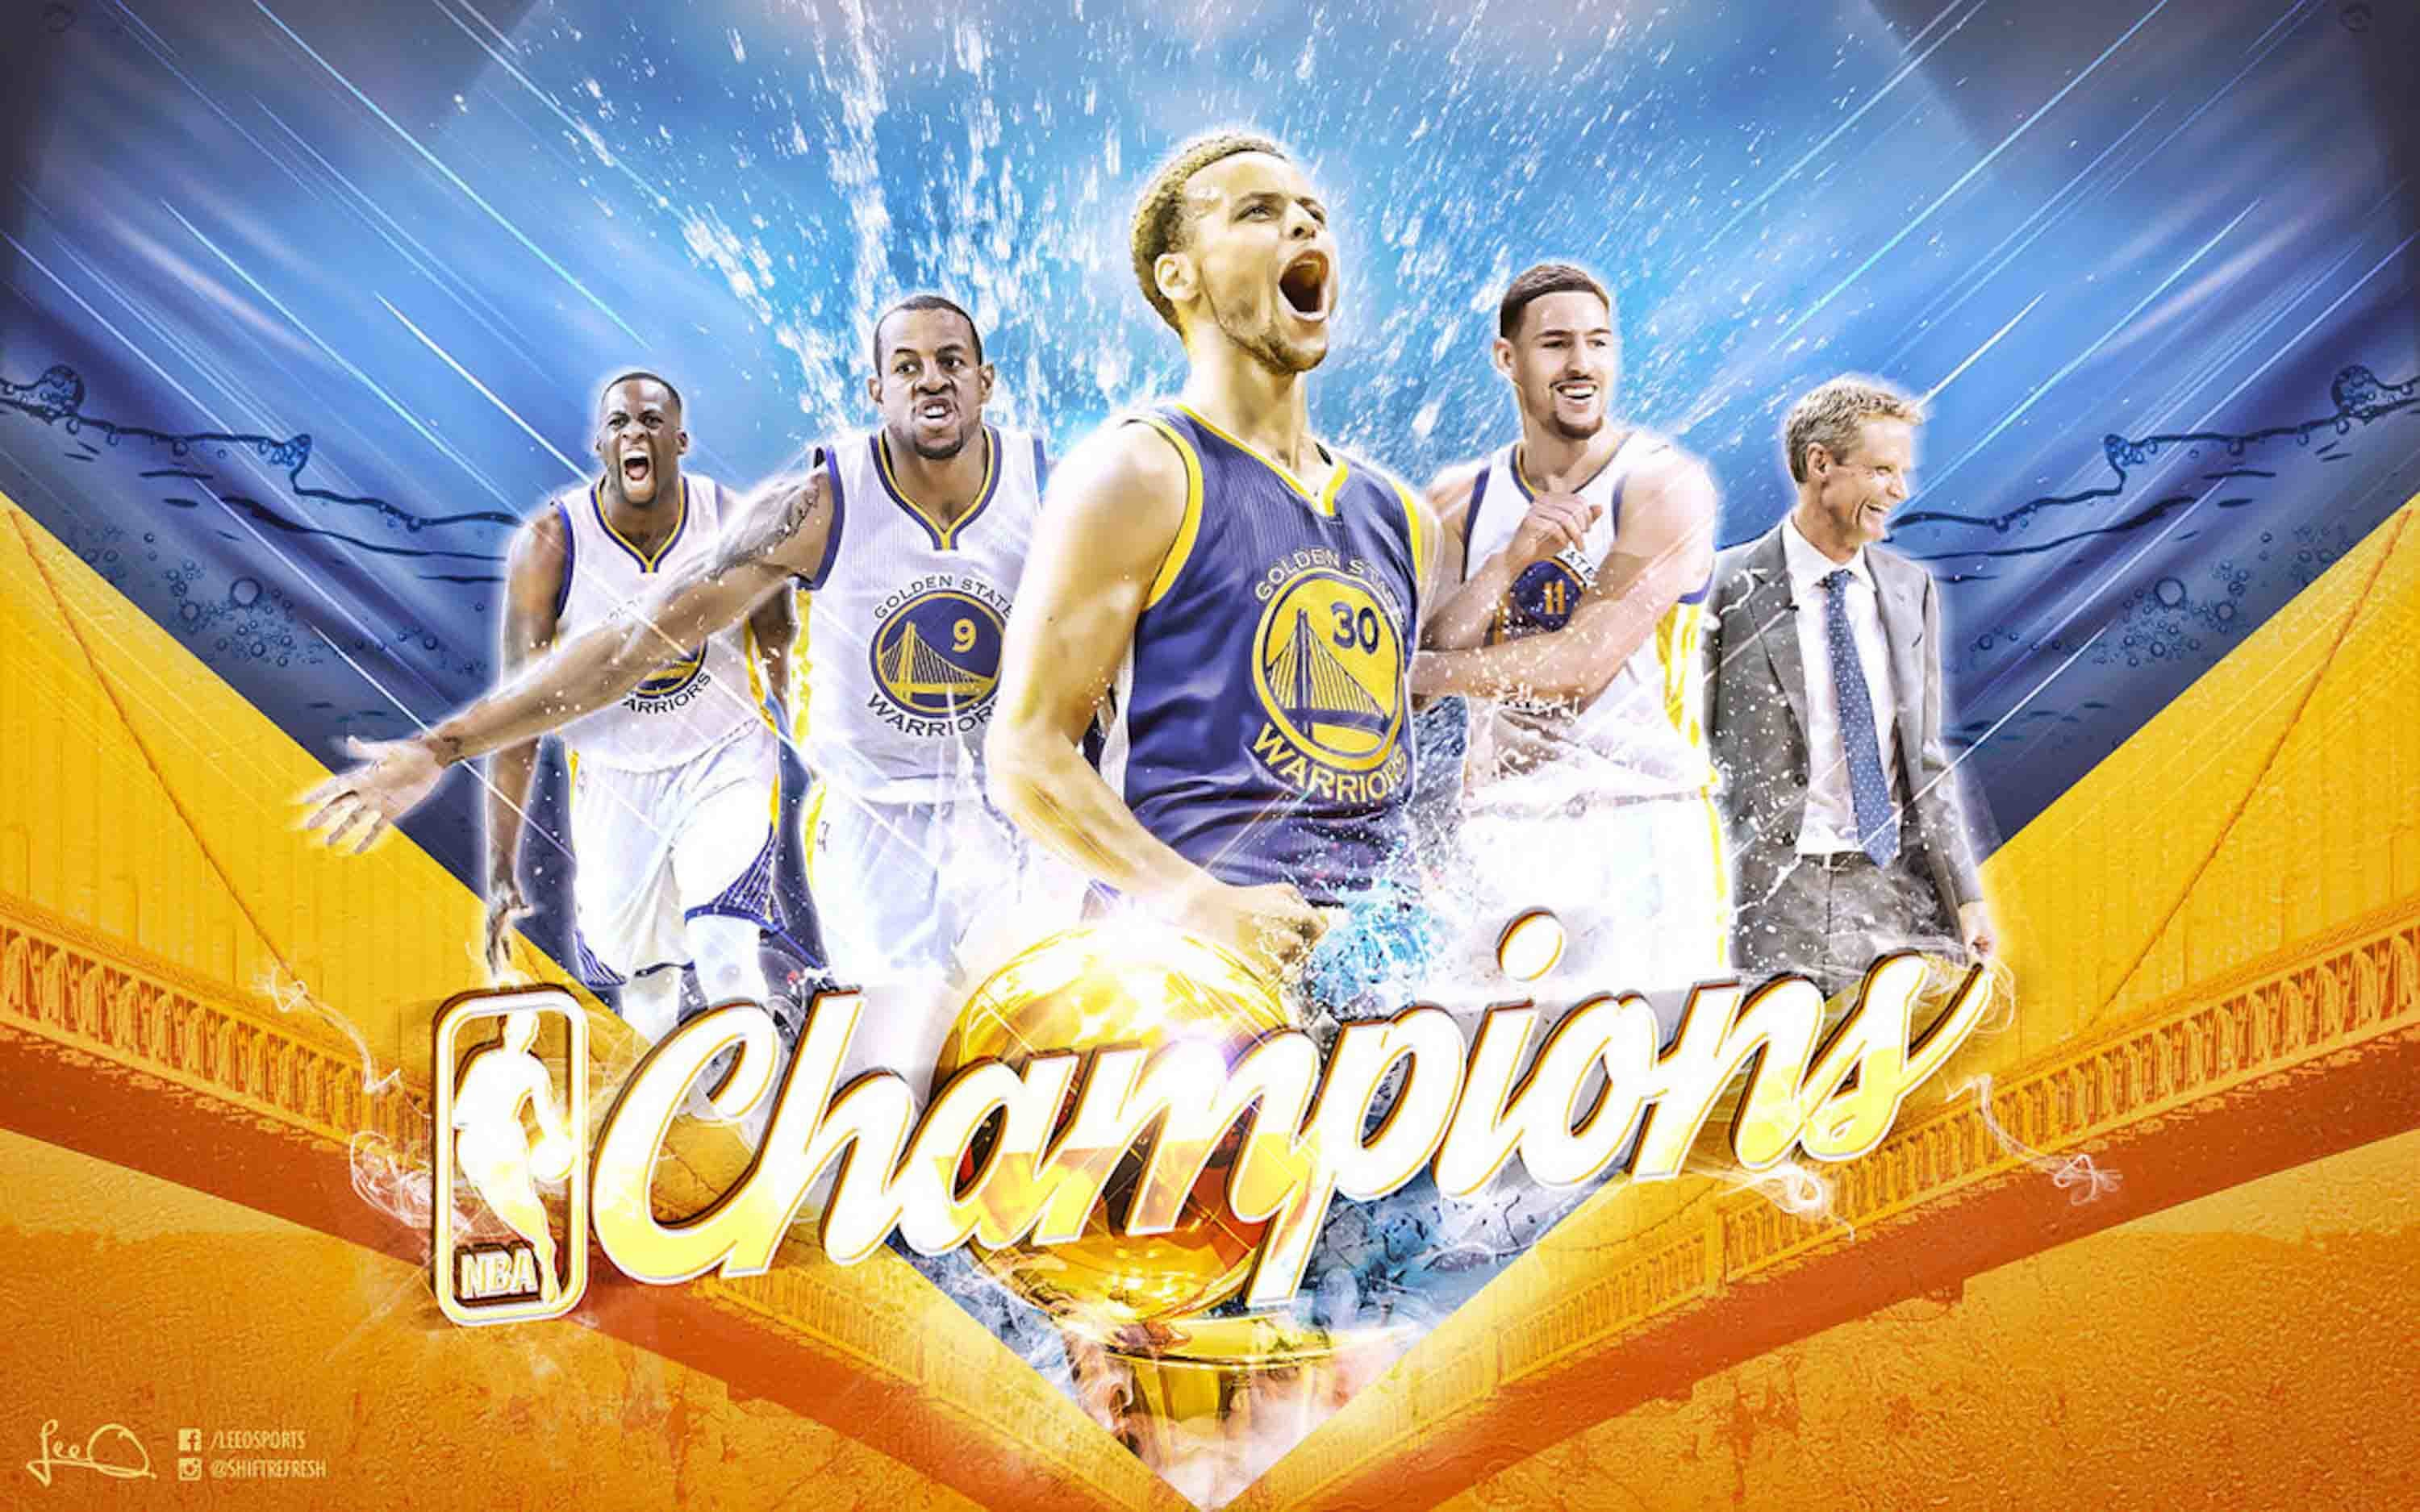 3000x1875 Golden State Warriors NBA Champions Wallpaper by skythlee  https://www.facebook.